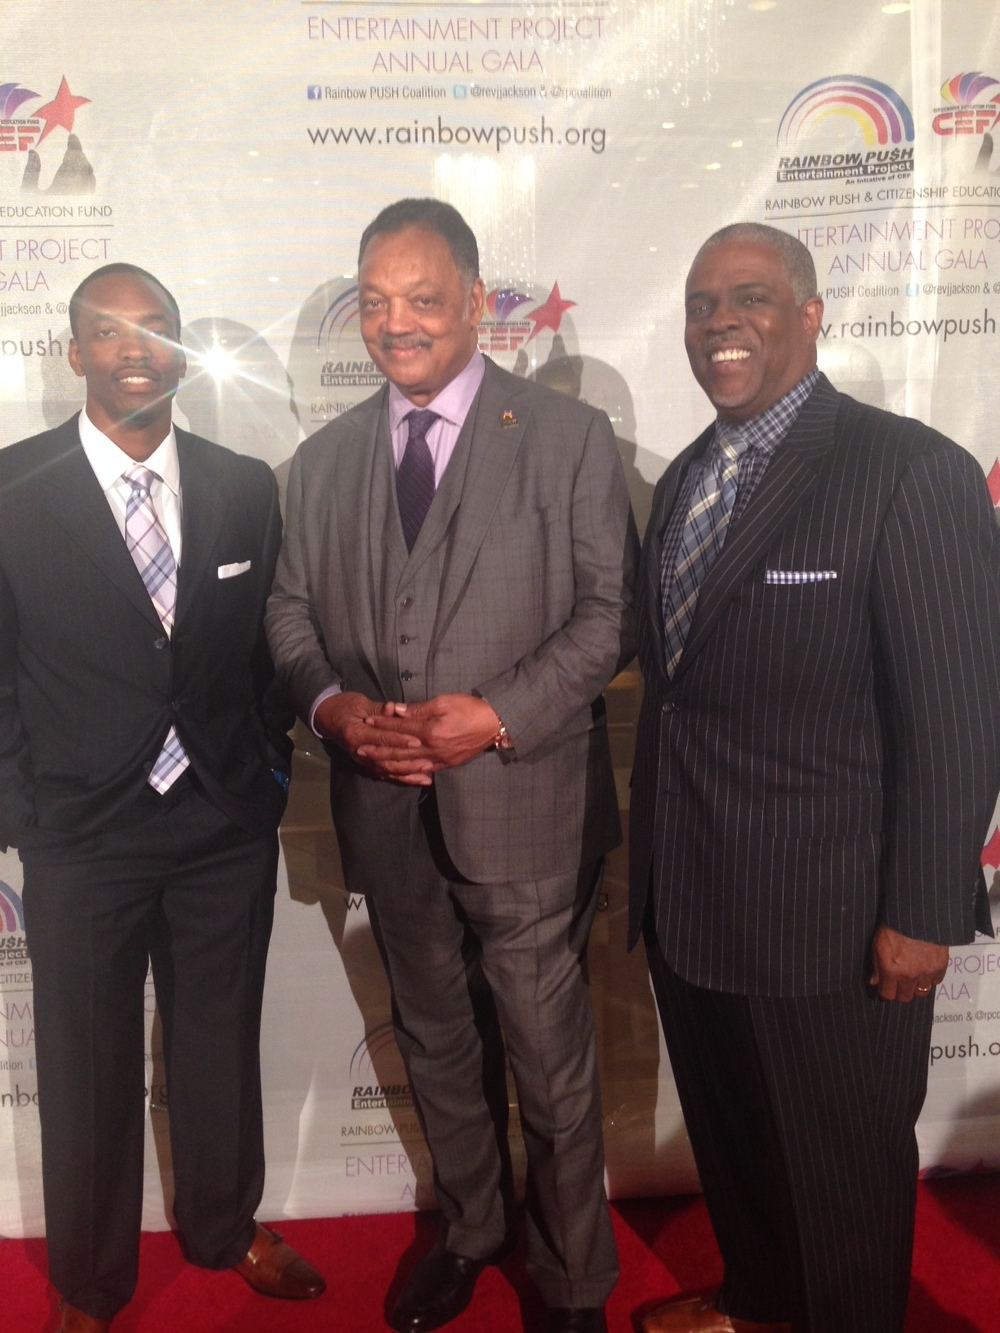 Professor Mark T. Harris, Esq. and Martin Harris with the Honorable Reverend Jesse Jackson